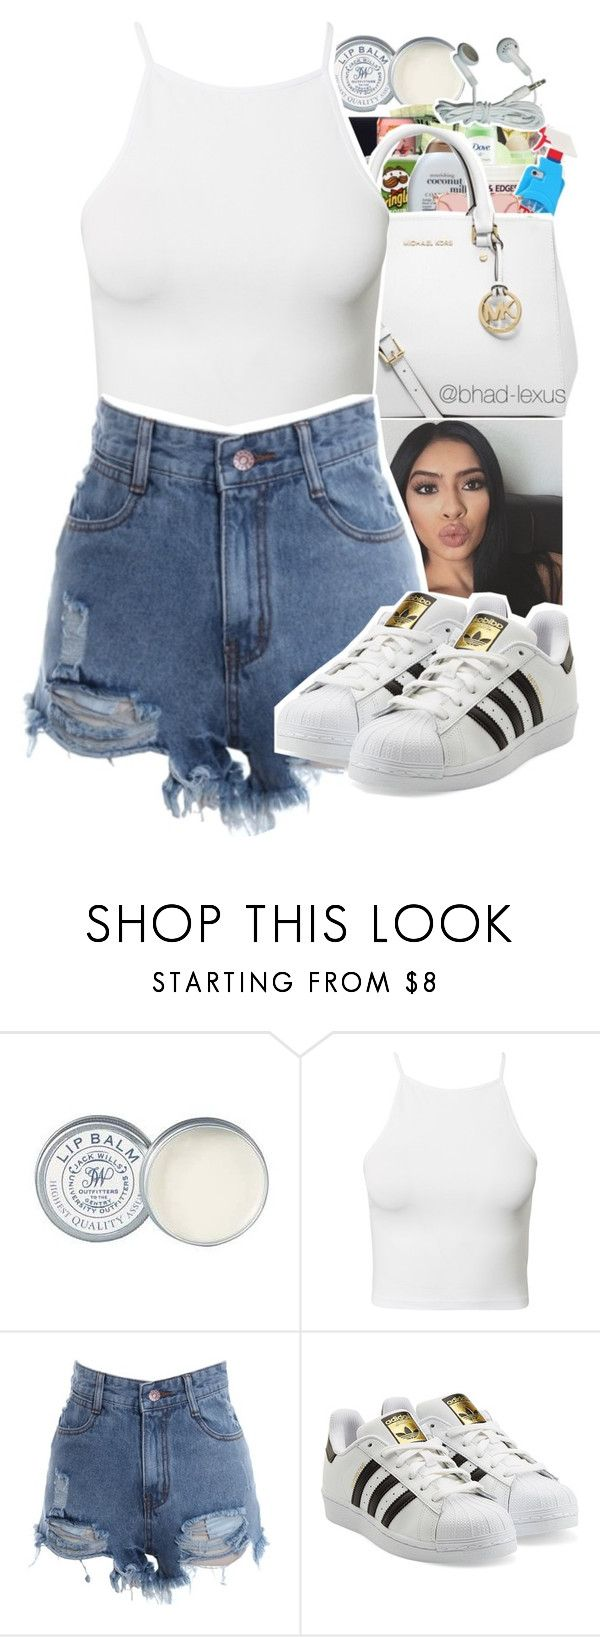 """untitled #141"" by xxsaraxtaraxx ❤ liked on Polyvore featuring Jack Wills, NLY Trend and adidas Originals"